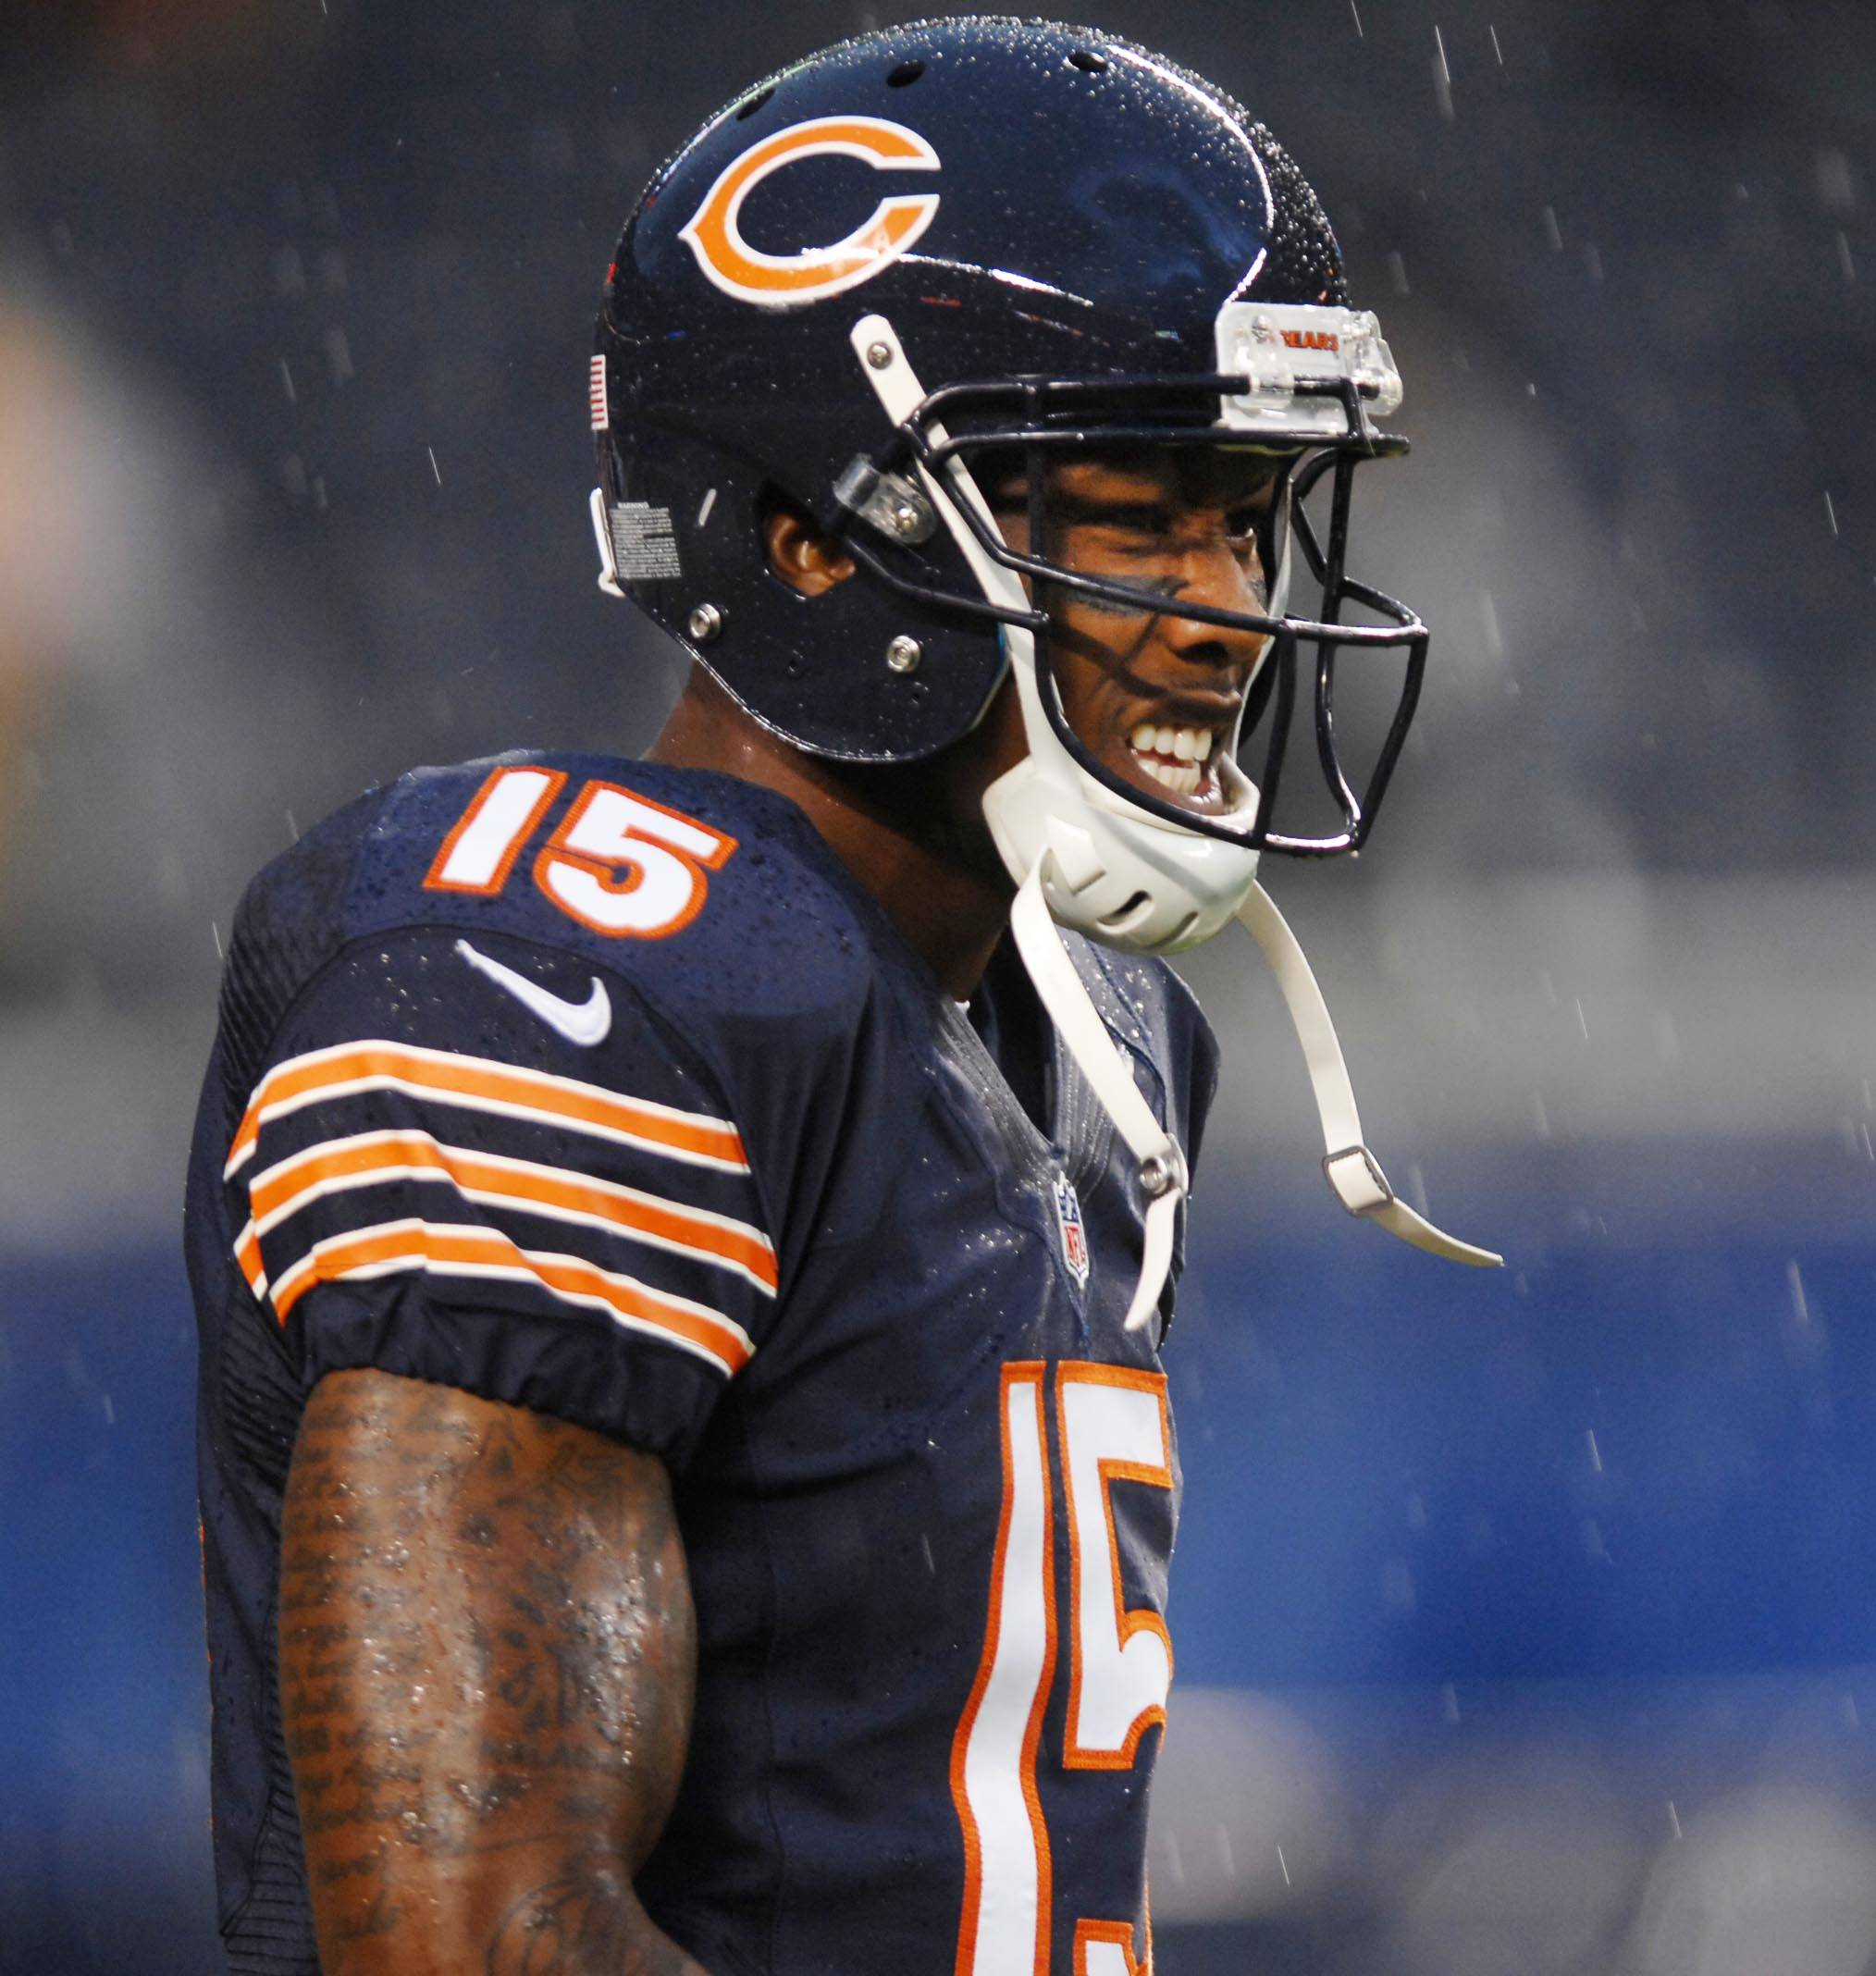 Bears wide receiver Brandon Marshall credits GM Phil Emery and head coach Marc Trestman with helping him become a better person.